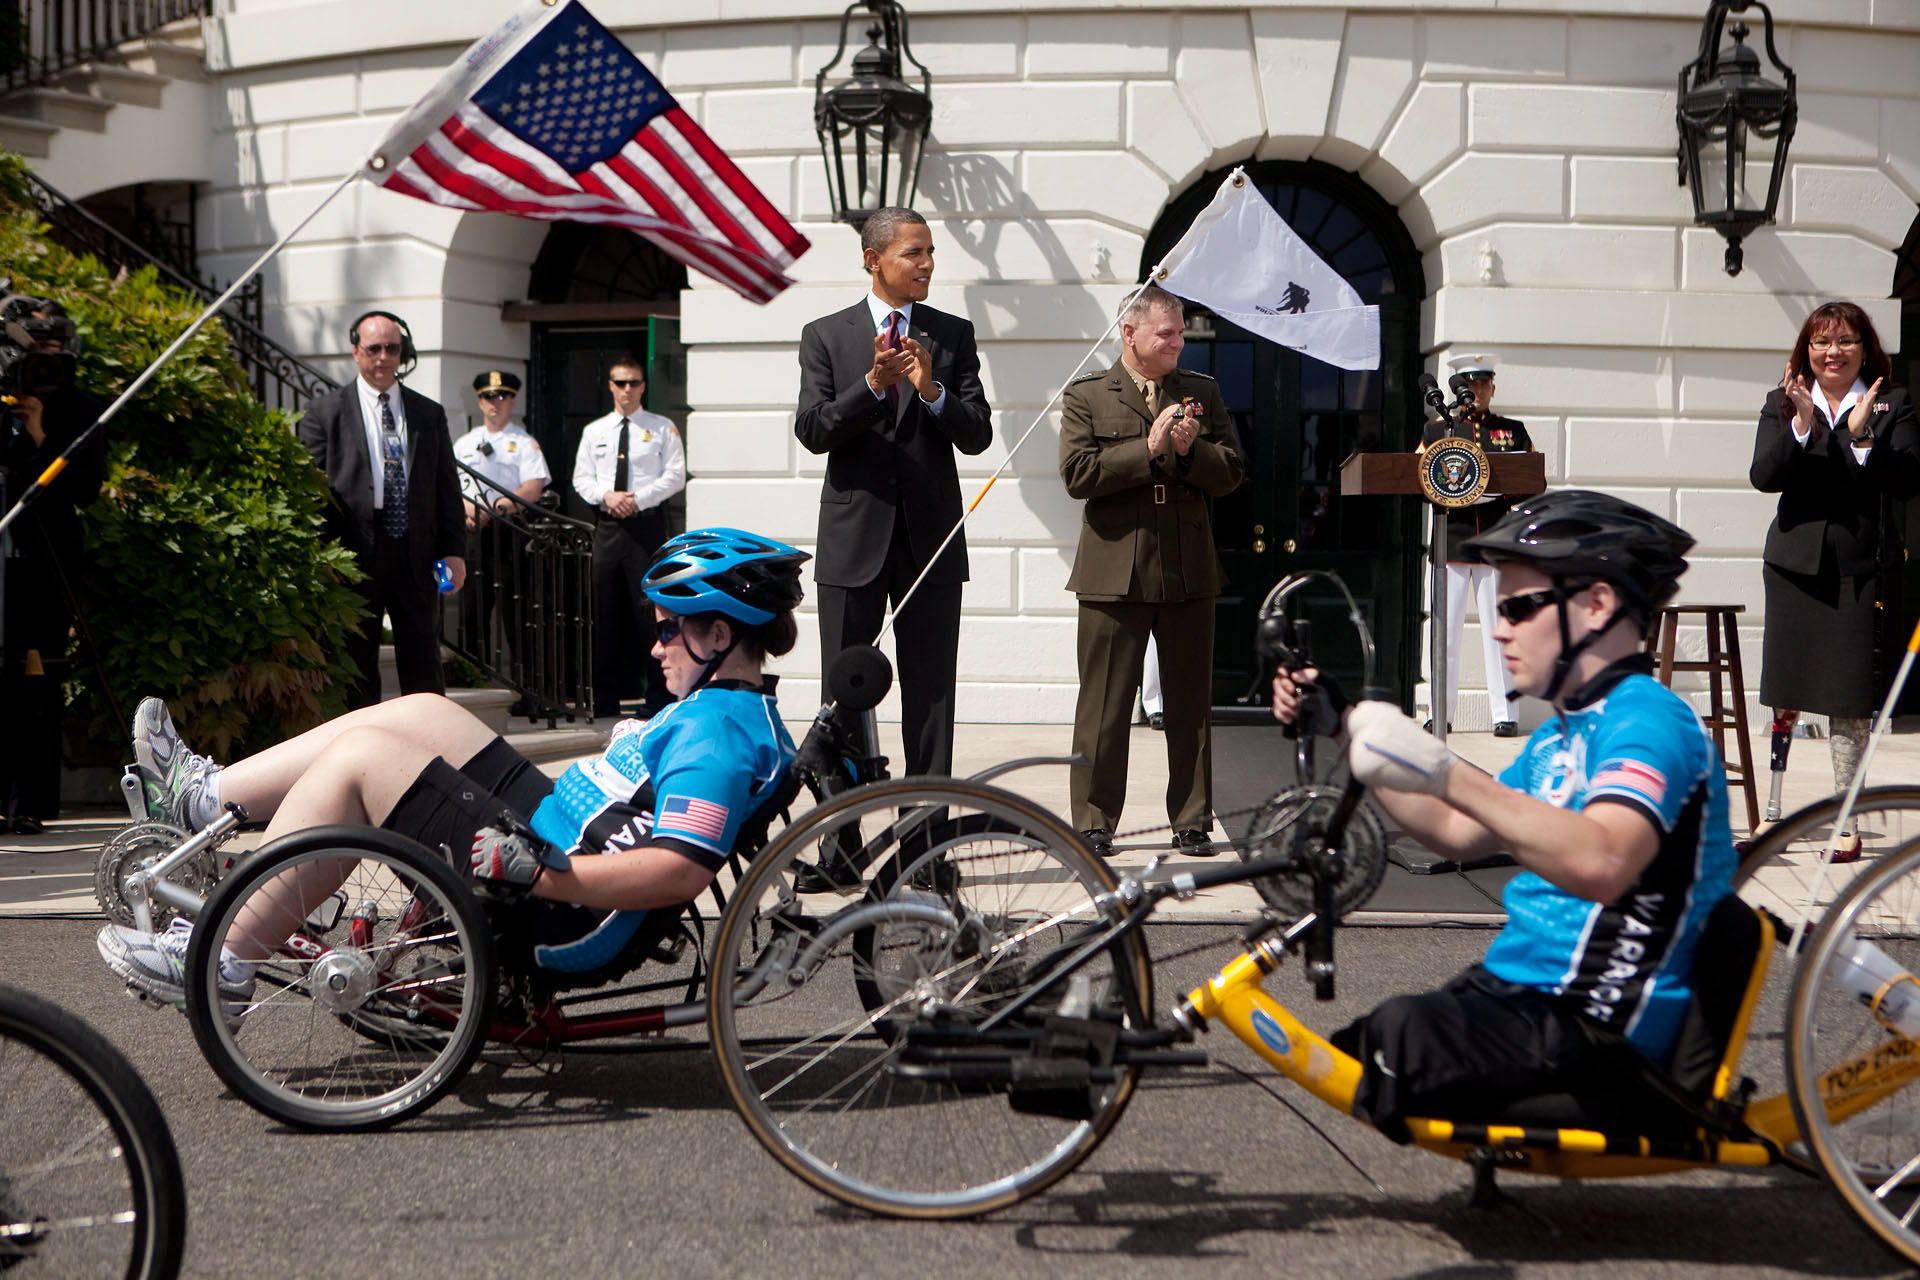 President Obama at Soldier's Ride